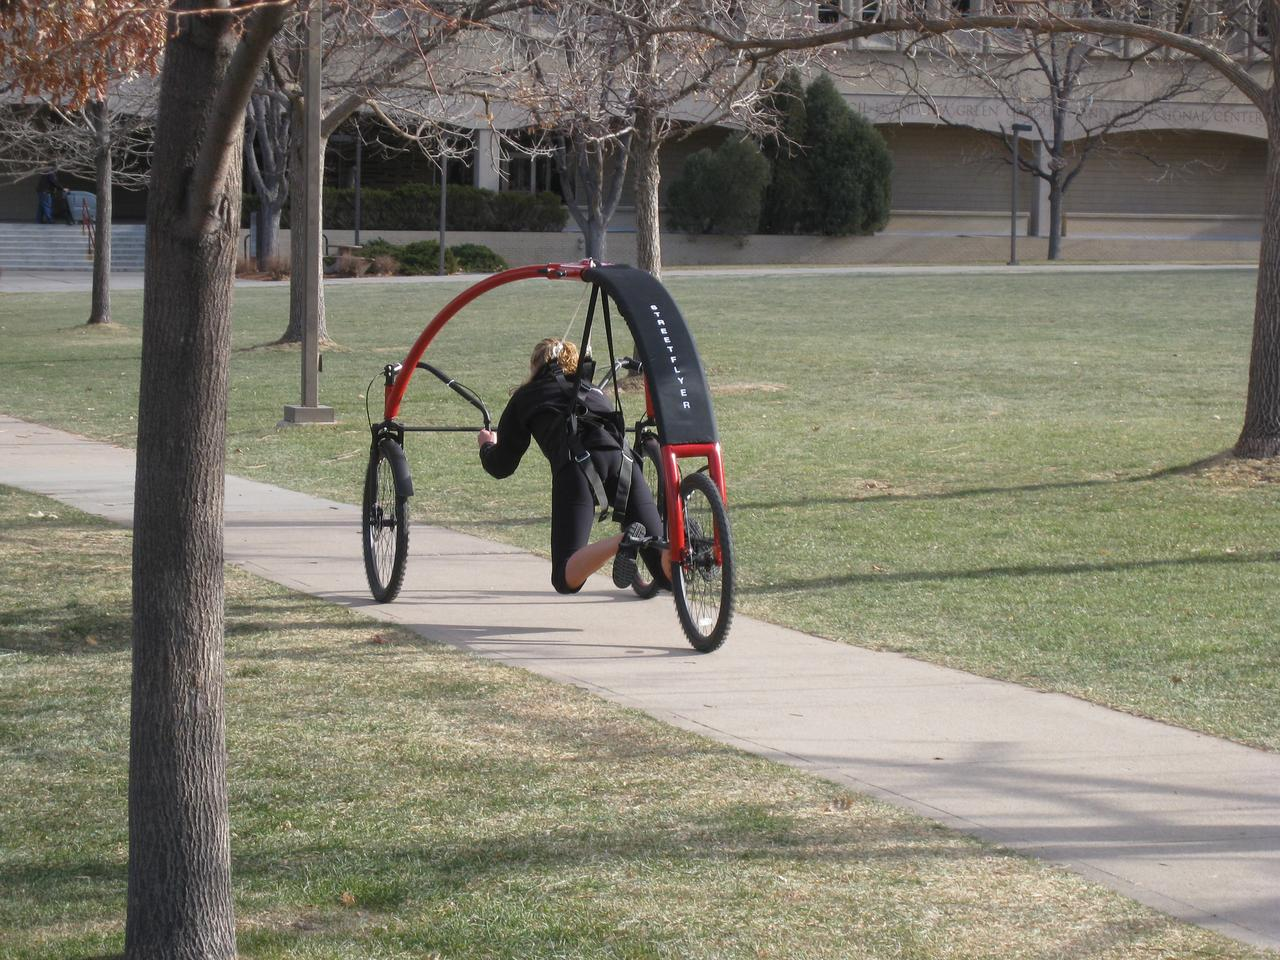 Flying through the park, harnessed into the StreetFlyer prototype built by students from Colorado's School of Mines Mechanical Engineering Department